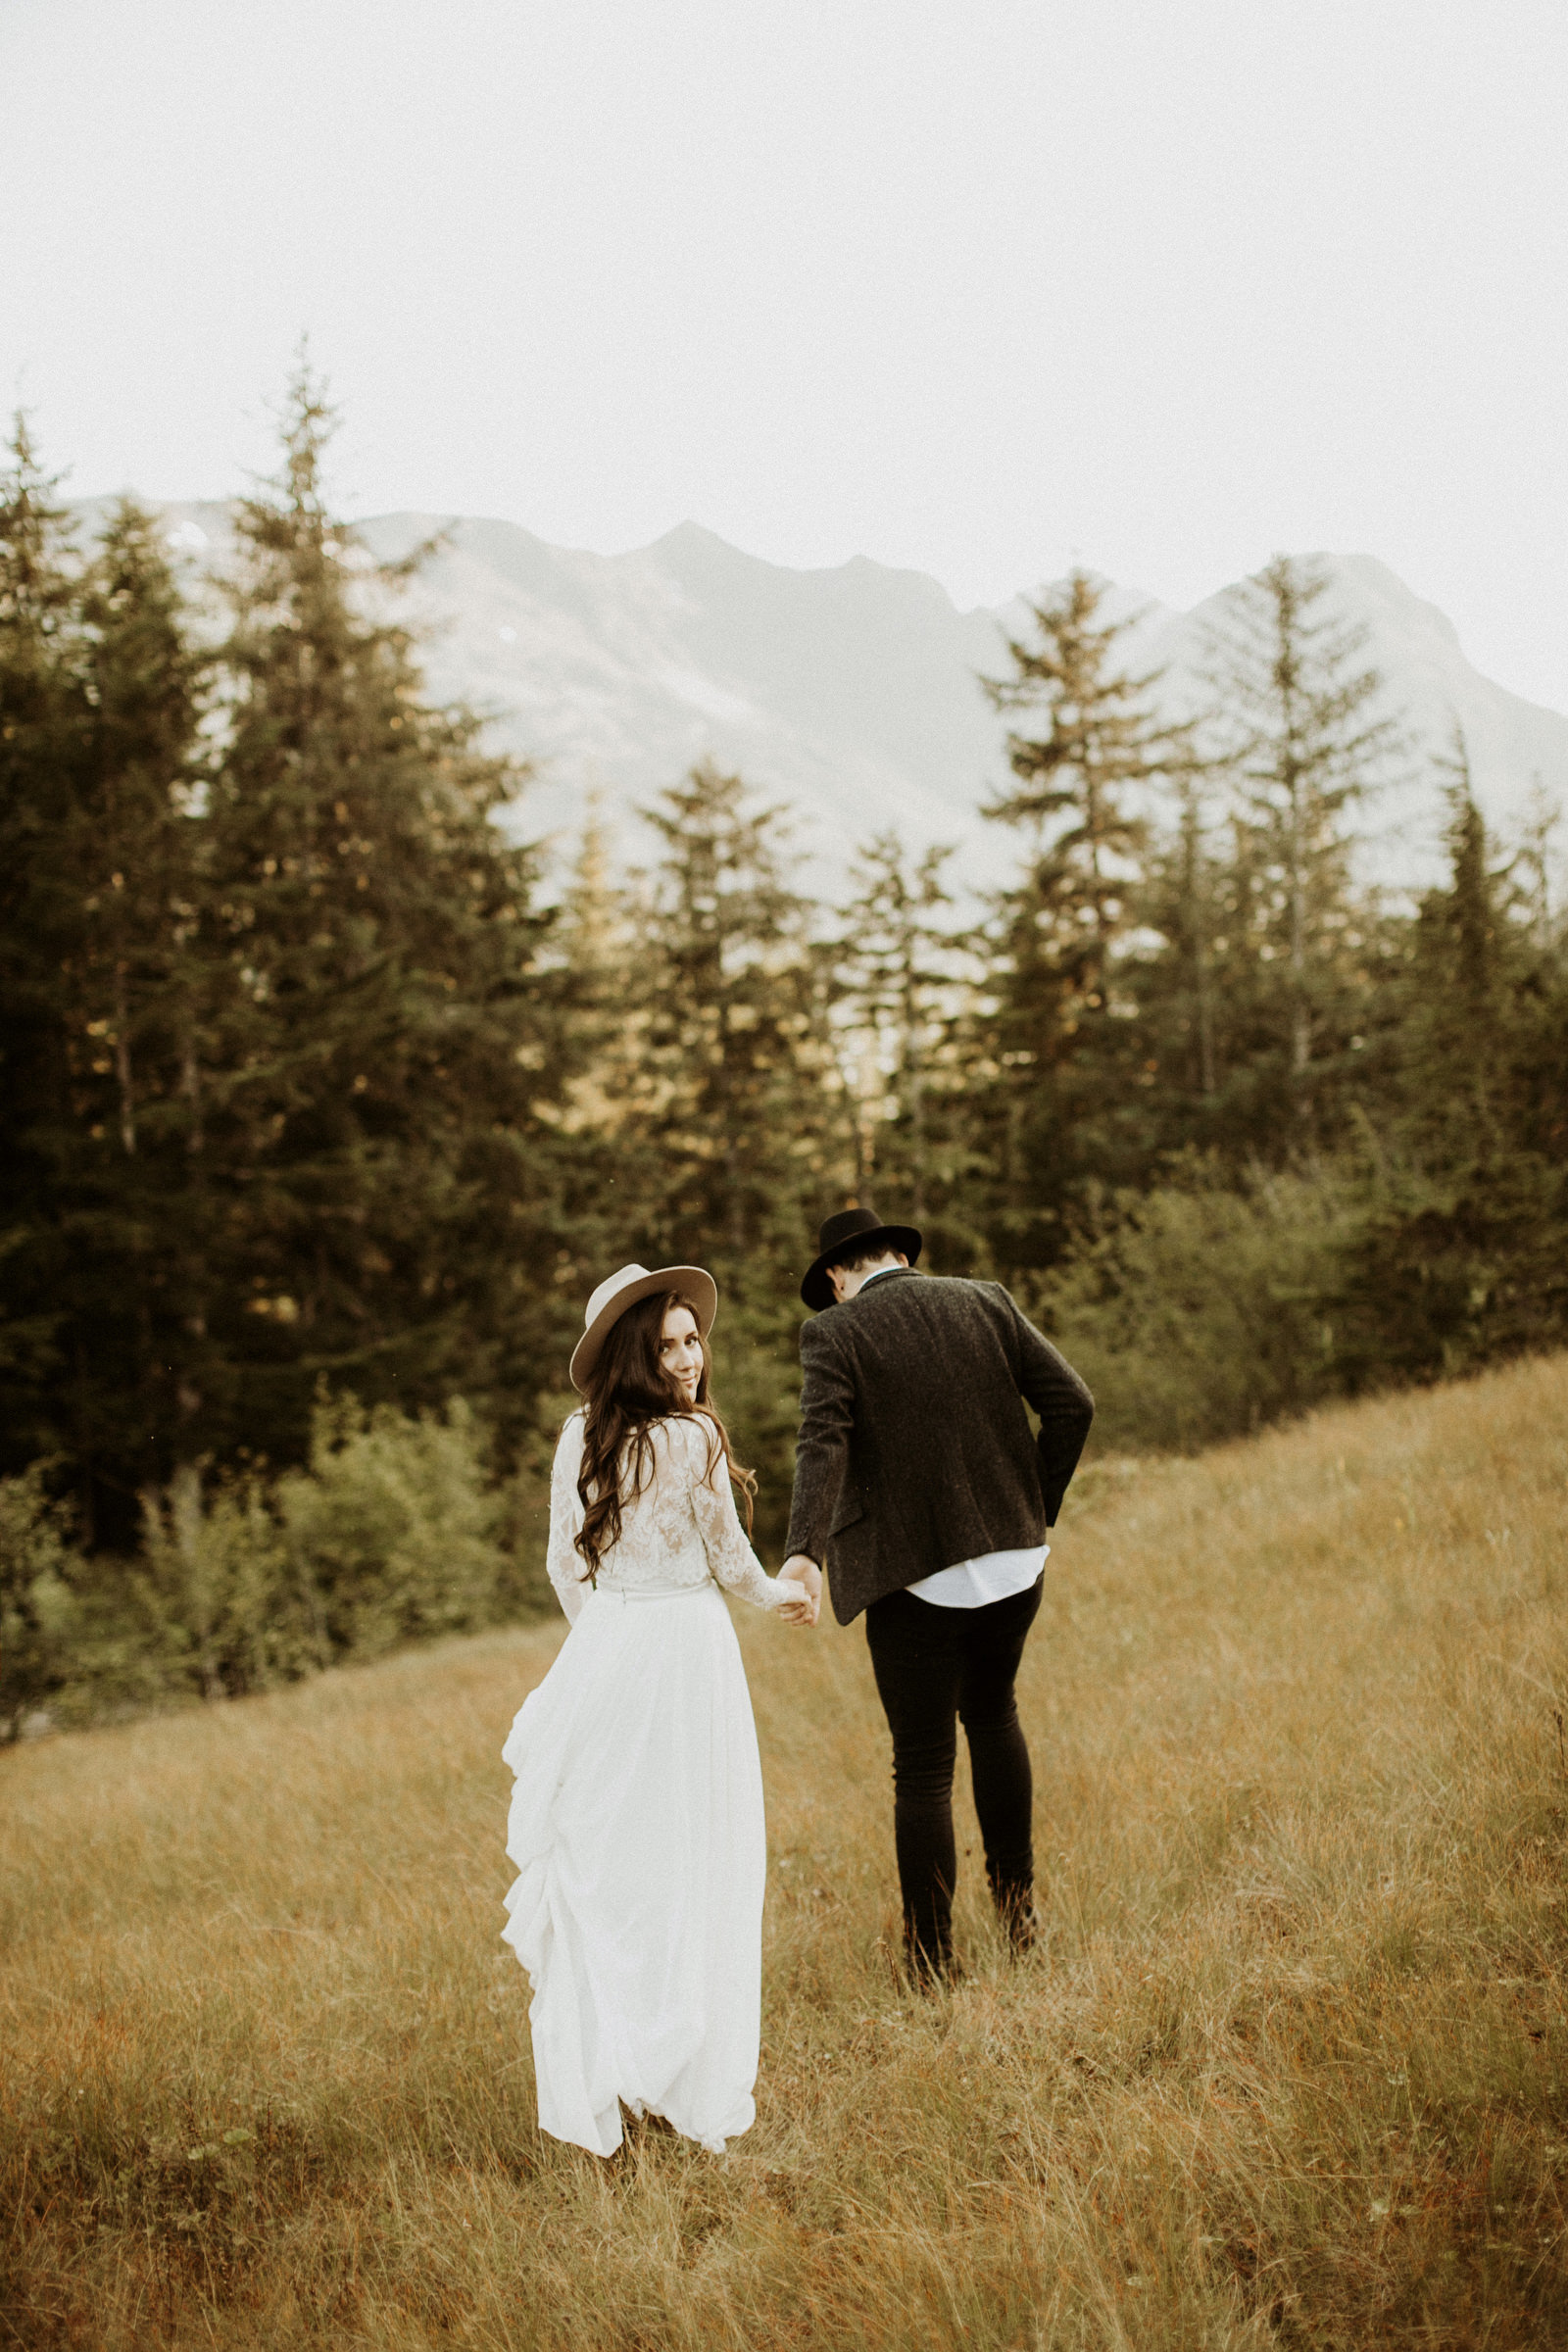 athena-and-camron-alaska-elopement-wedding-inspiration-india-earl-athena-grace-glacier-lagoon-wedding49